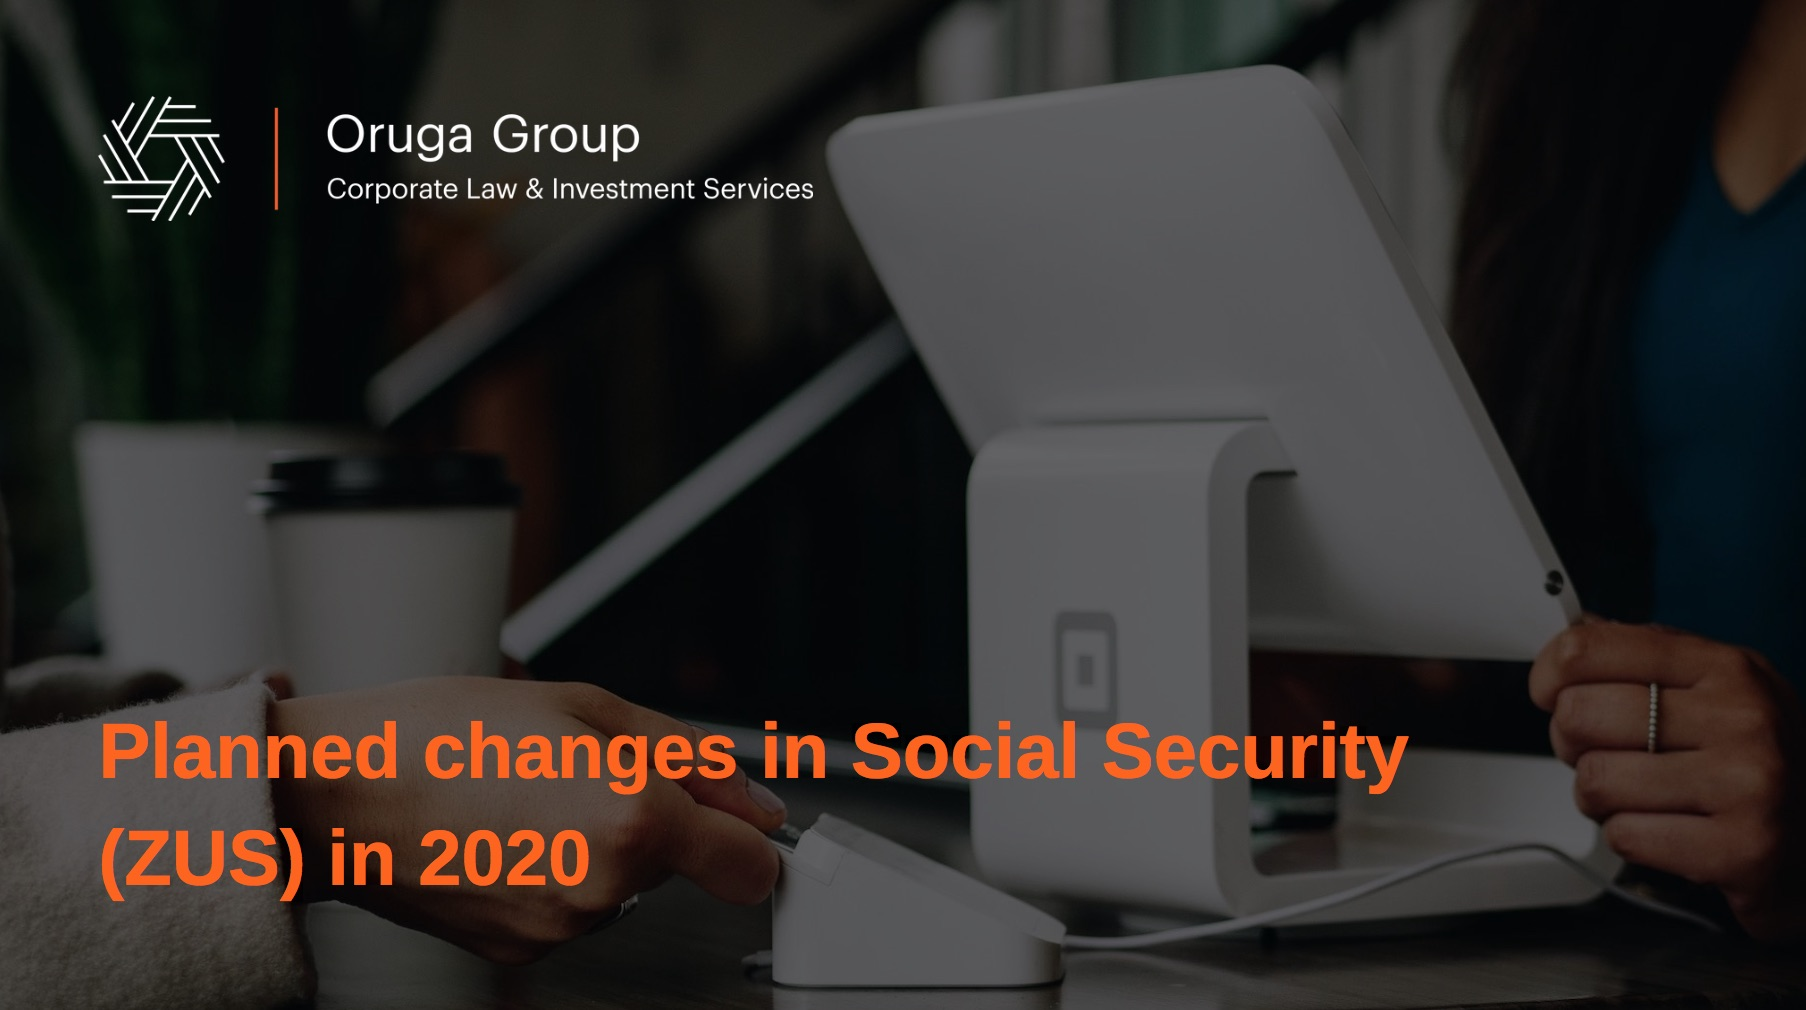 Planned changes in Social Security (ZUS) in 2020  Well